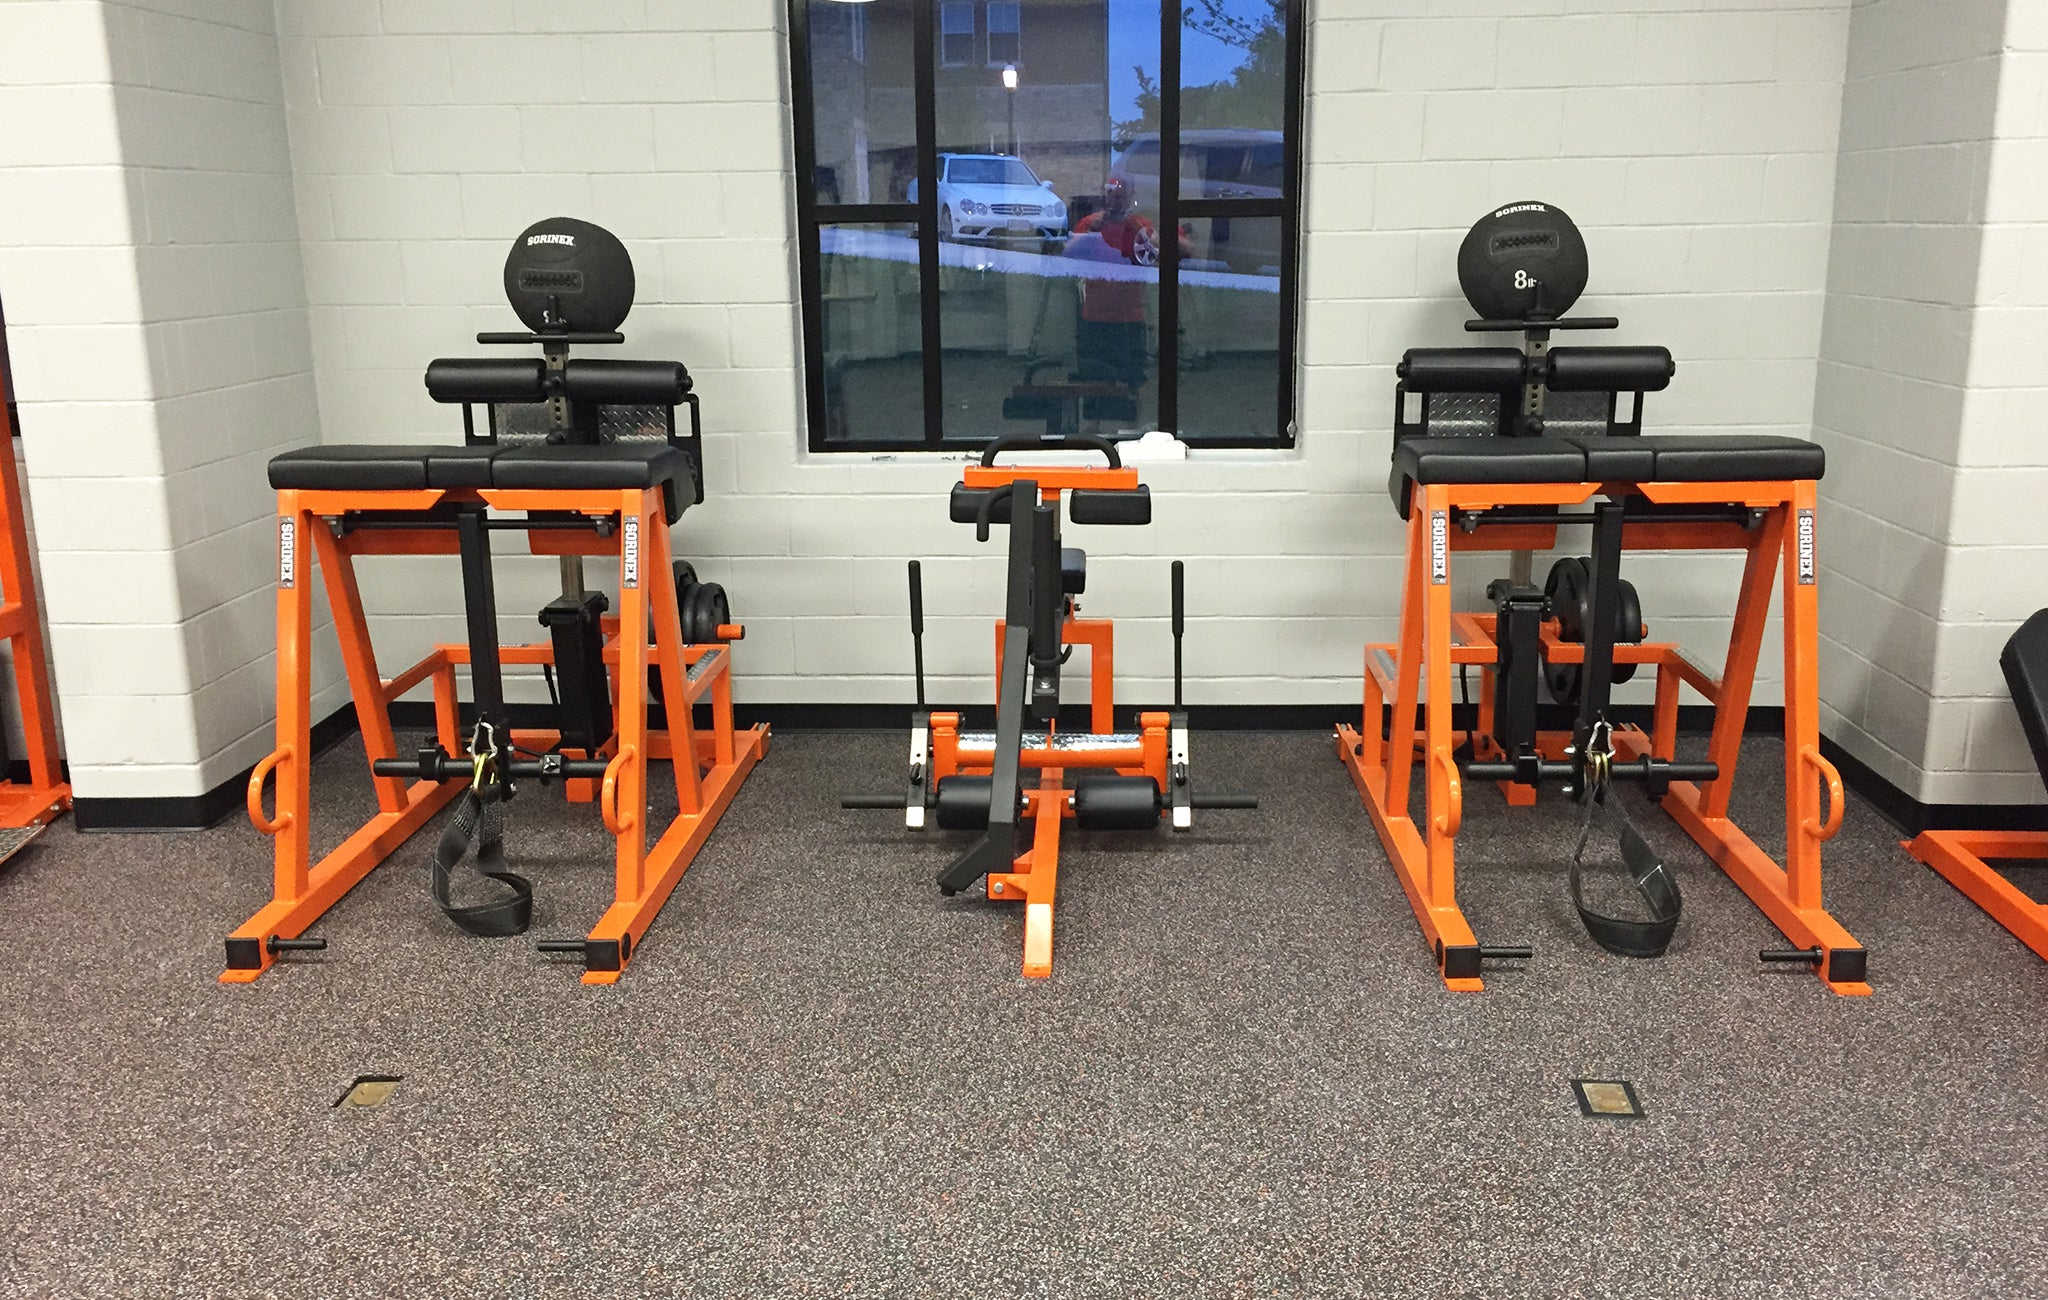 High school strength training equipment